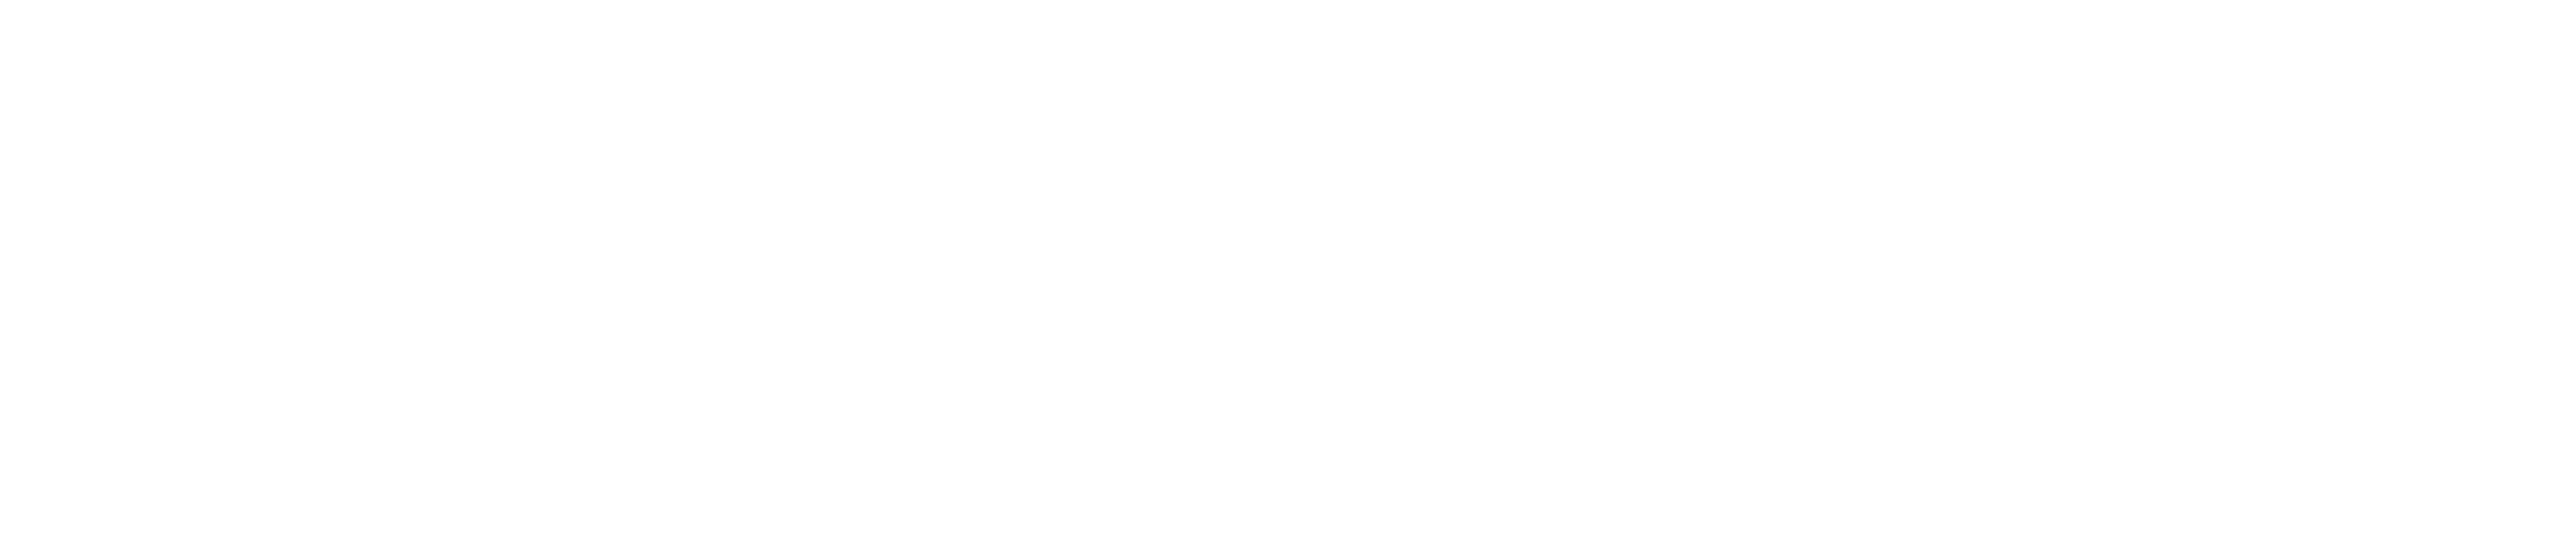 excellence in mr patient monitoring 25 years